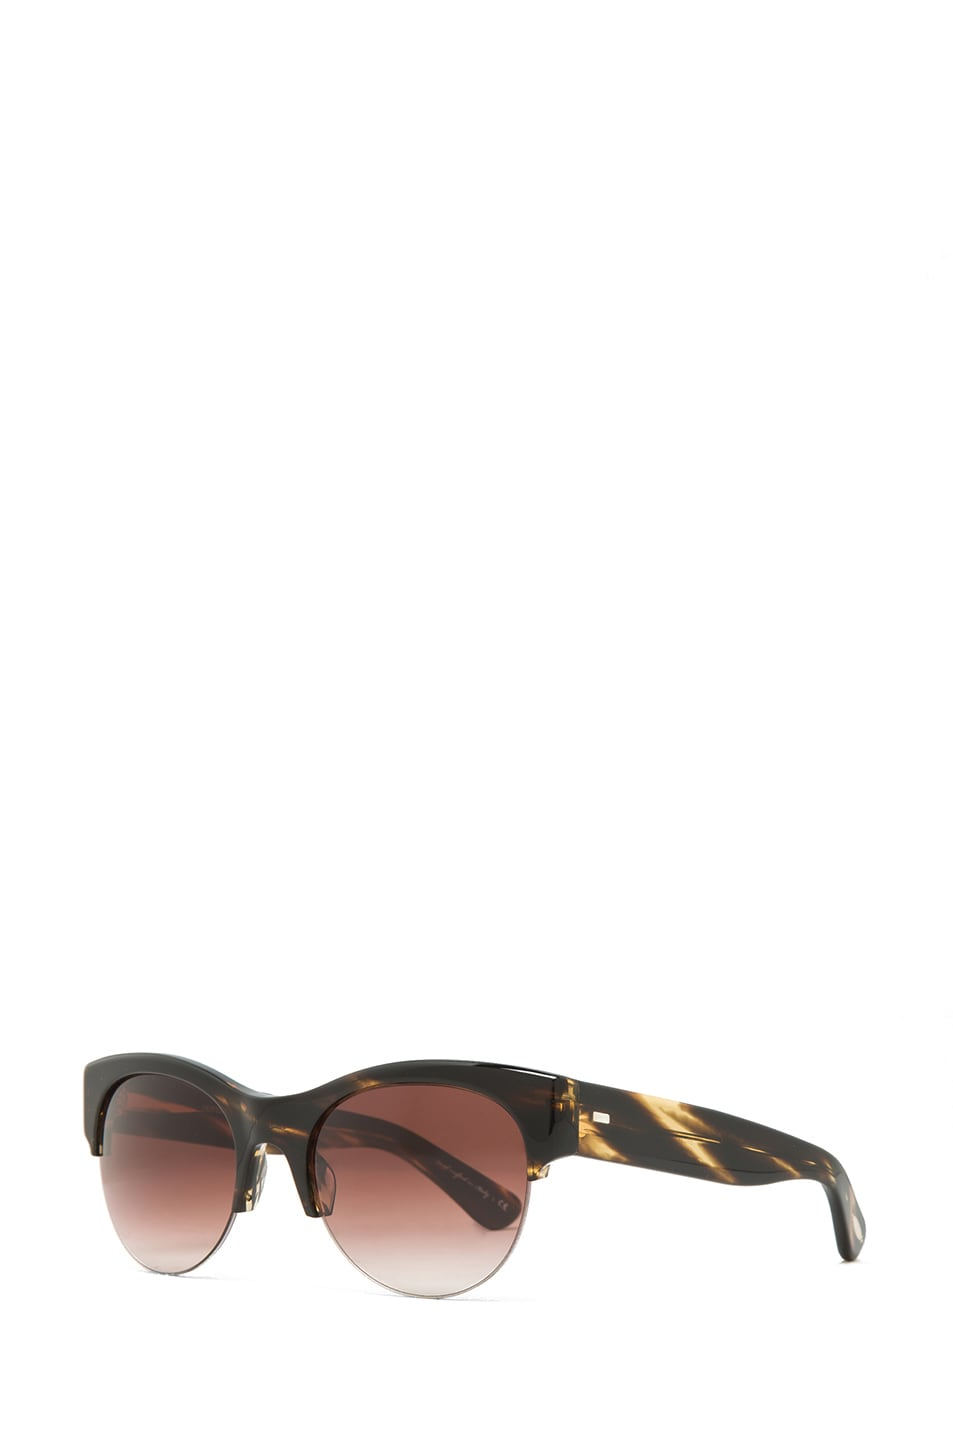 Image 2 of Oliver Peoples Louella Sunglasses in Cocobolo